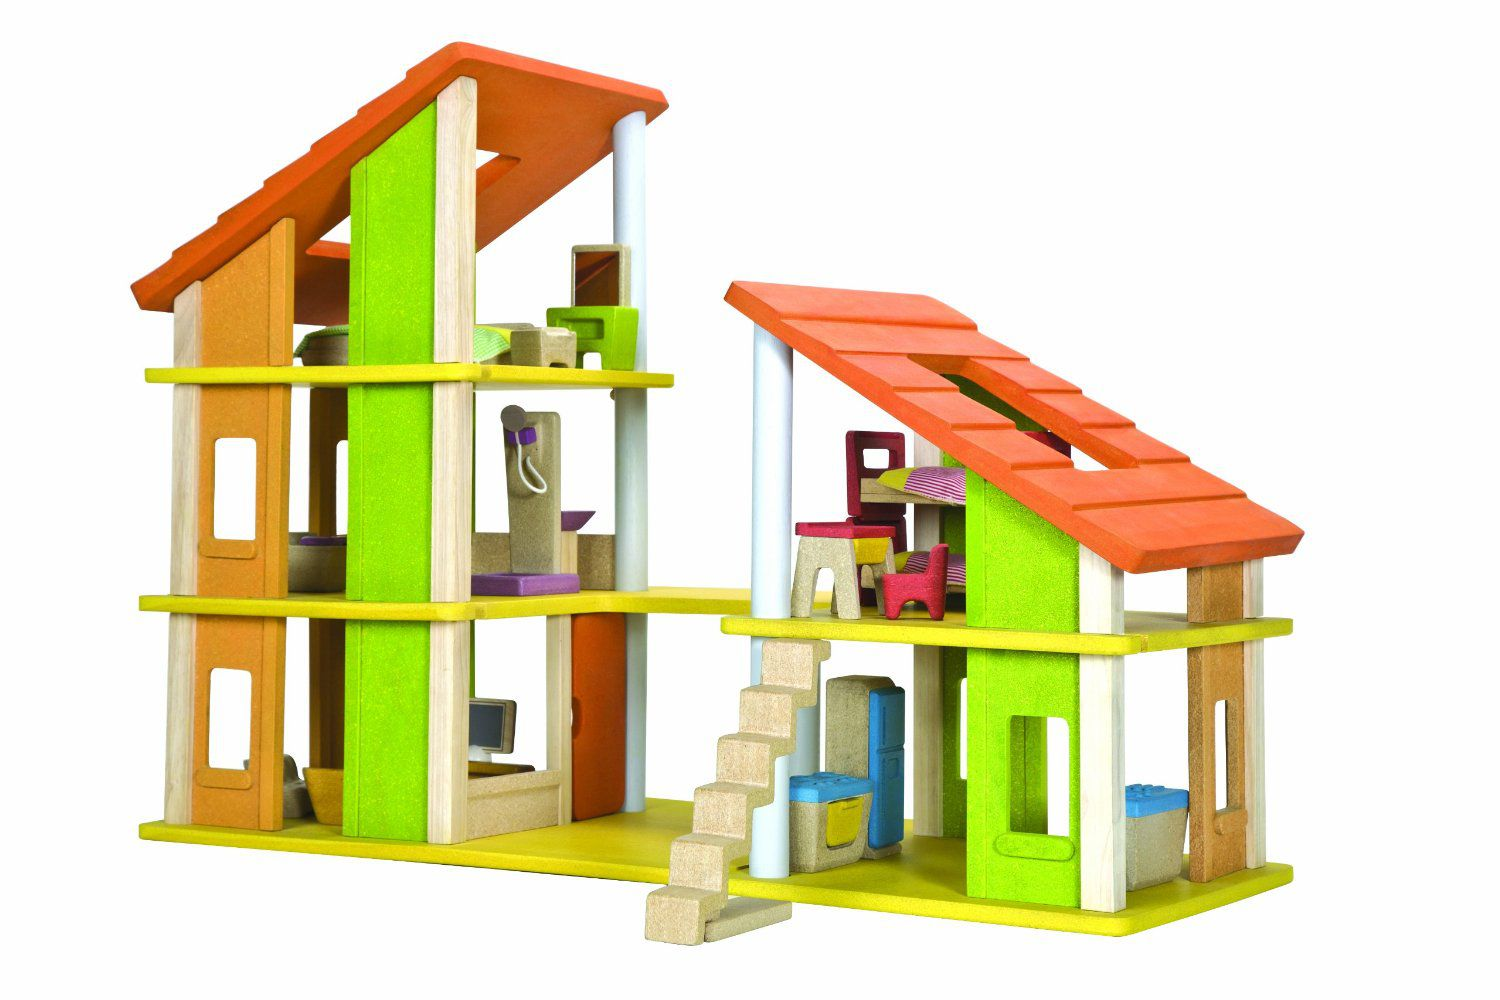 The 17 best dollhouses to buy for kids in 2019